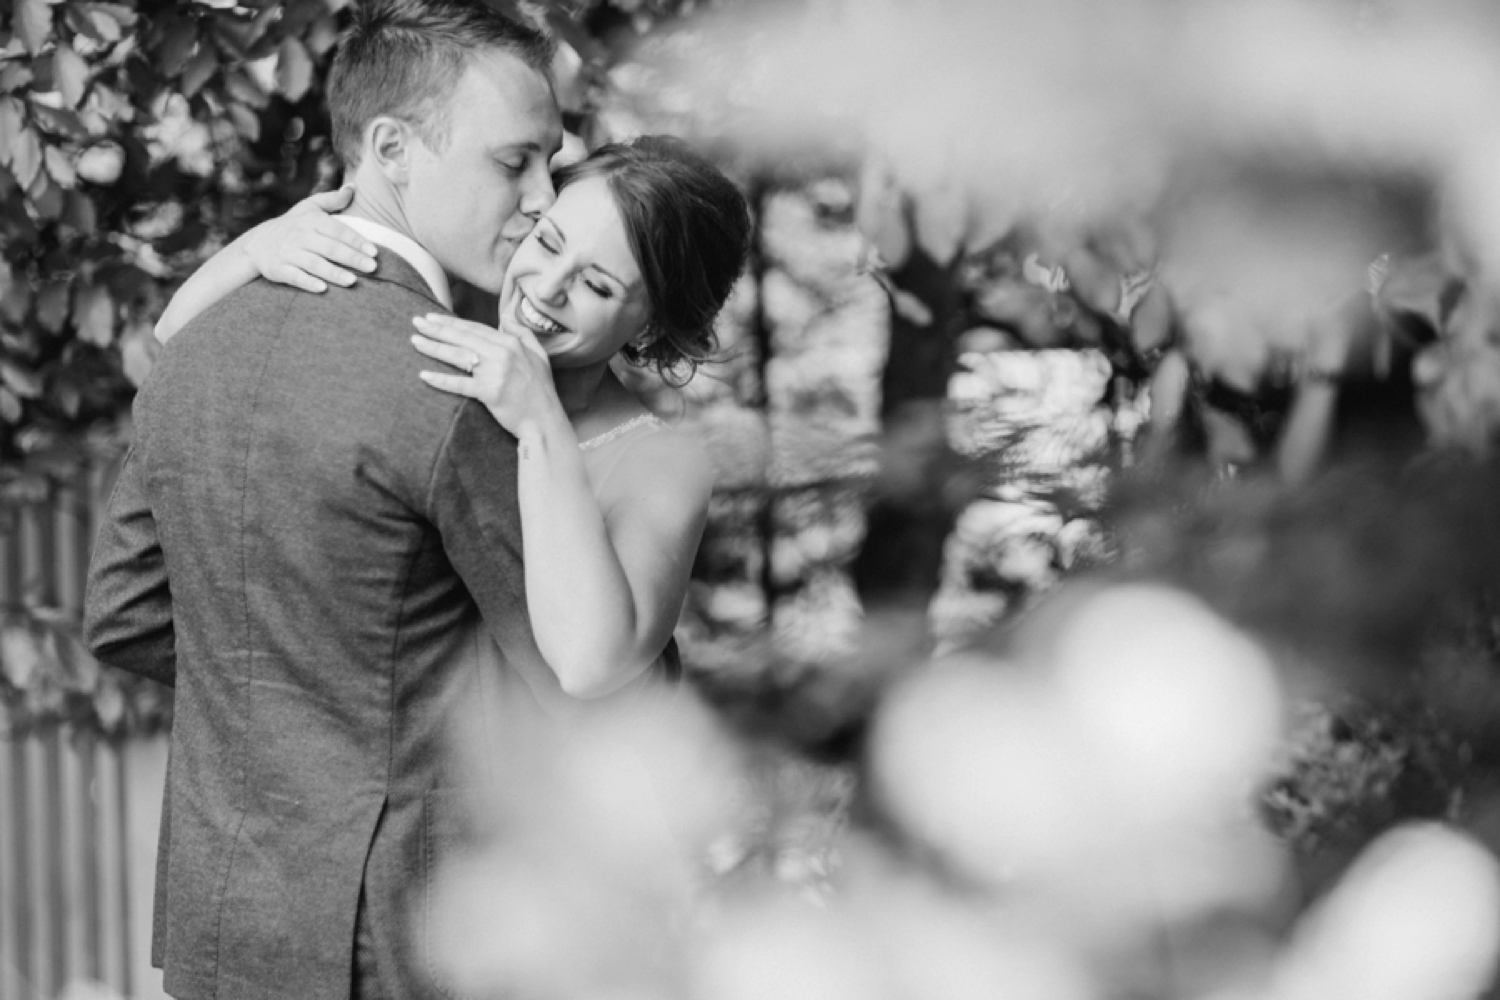 wegerzyn-gardens-wedding-dayton-ohio-chloe-luka-photography_0042.jpg